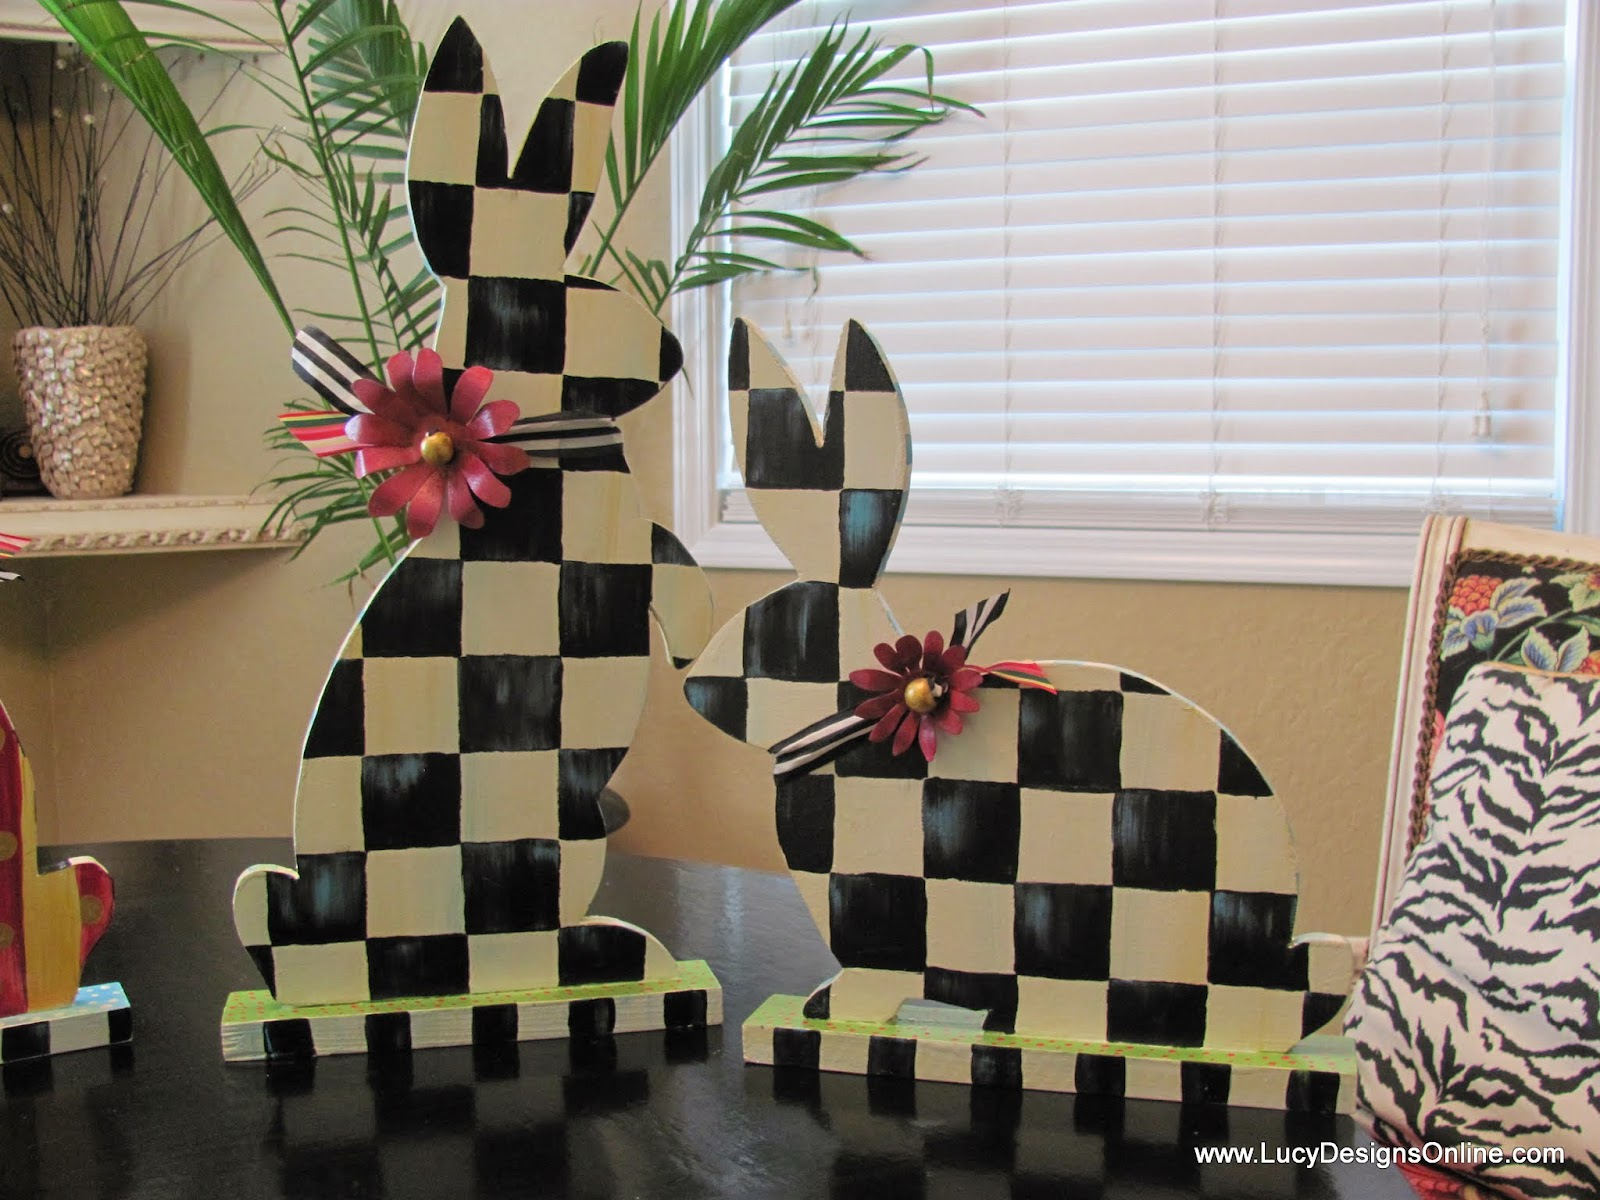 Easter black and white checked bunny rabbits decor